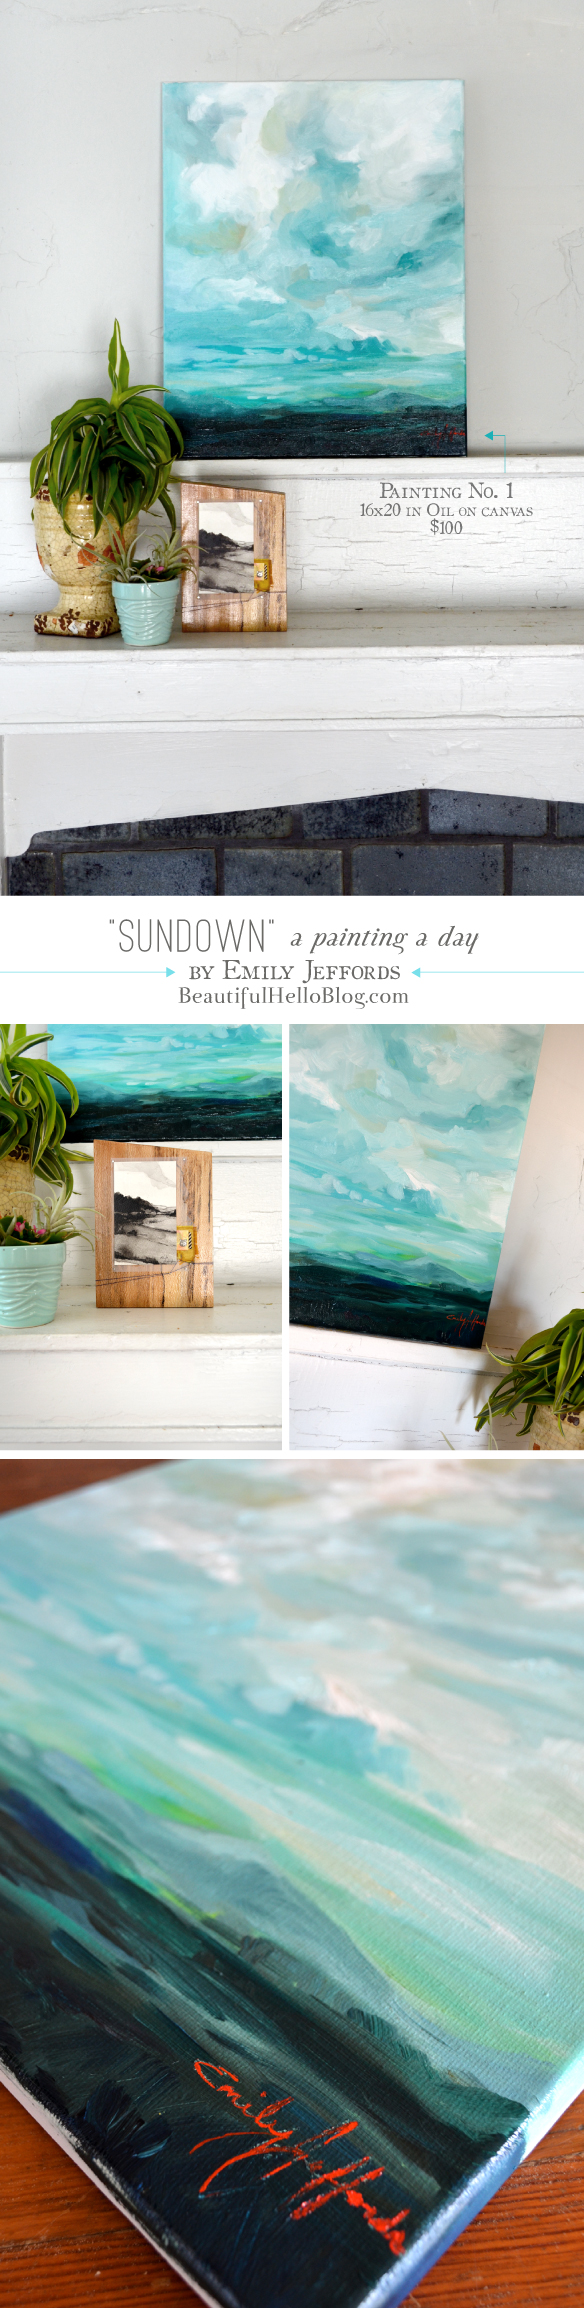 Sundown: Oil Painting by Emily Jeffords